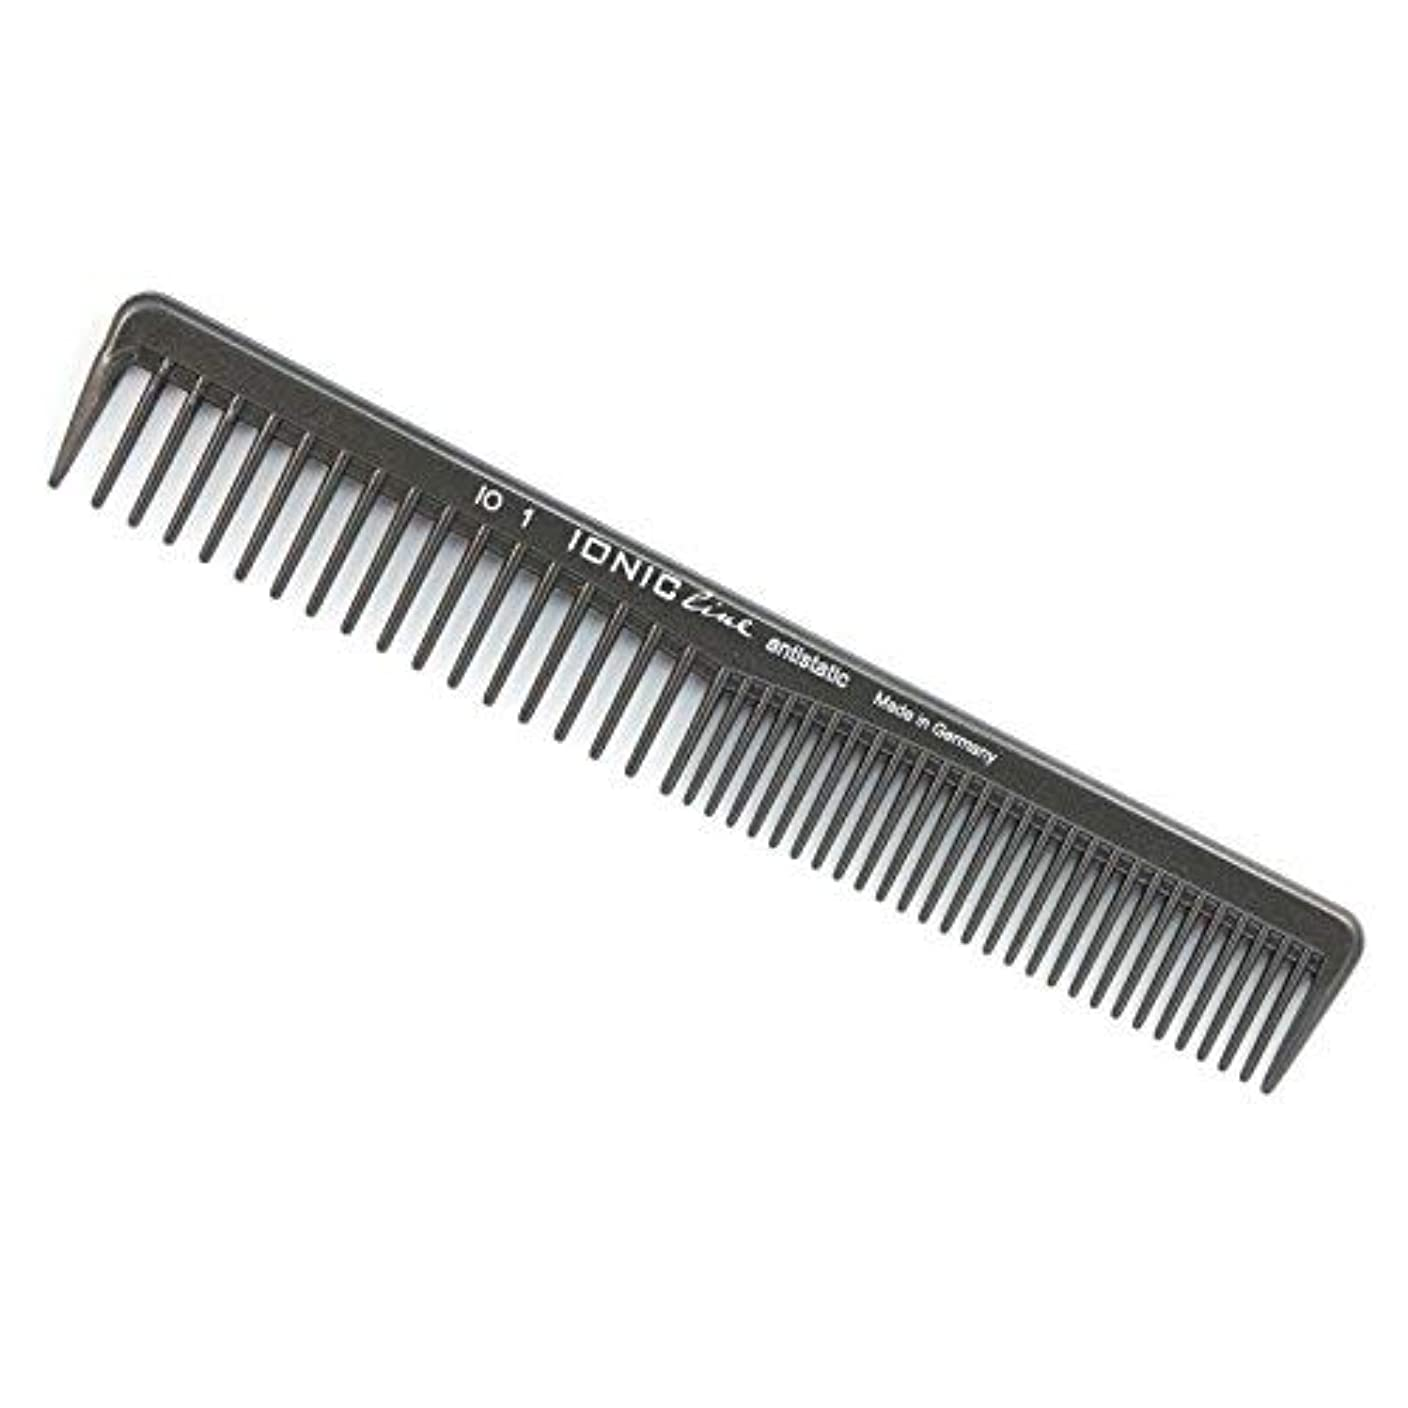 コック合理化神経Hercules S?gemann Ionic Line Cutting Comb with coarse and Very coarse Teeth | Ionized Thermoplastic - Made in...